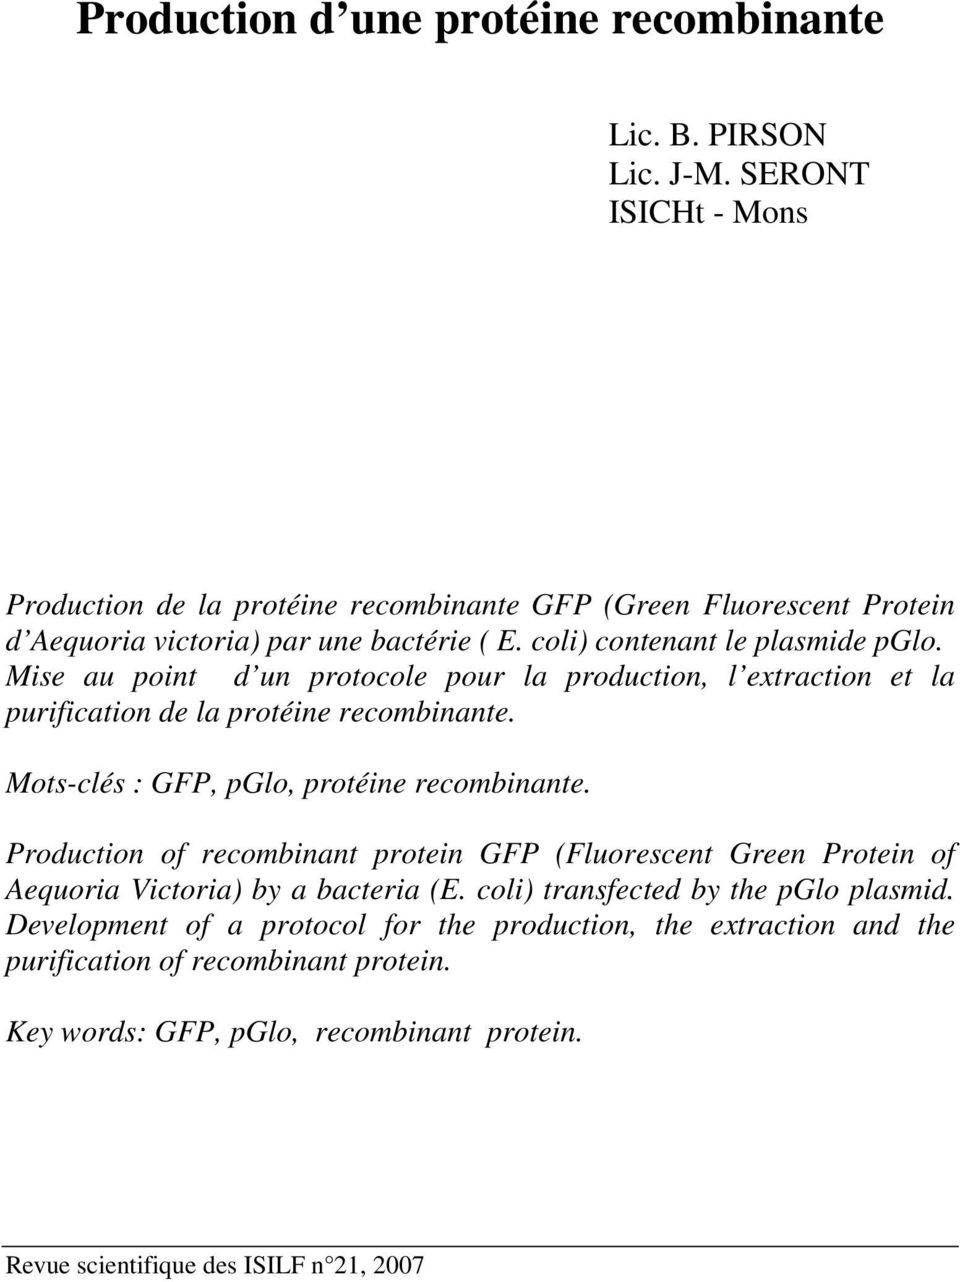 Mise au point d un protocole pour la production, l extraction et la purification de la protéine recombinante. Mots-clés : GFP, pglo, protéine recombinante.